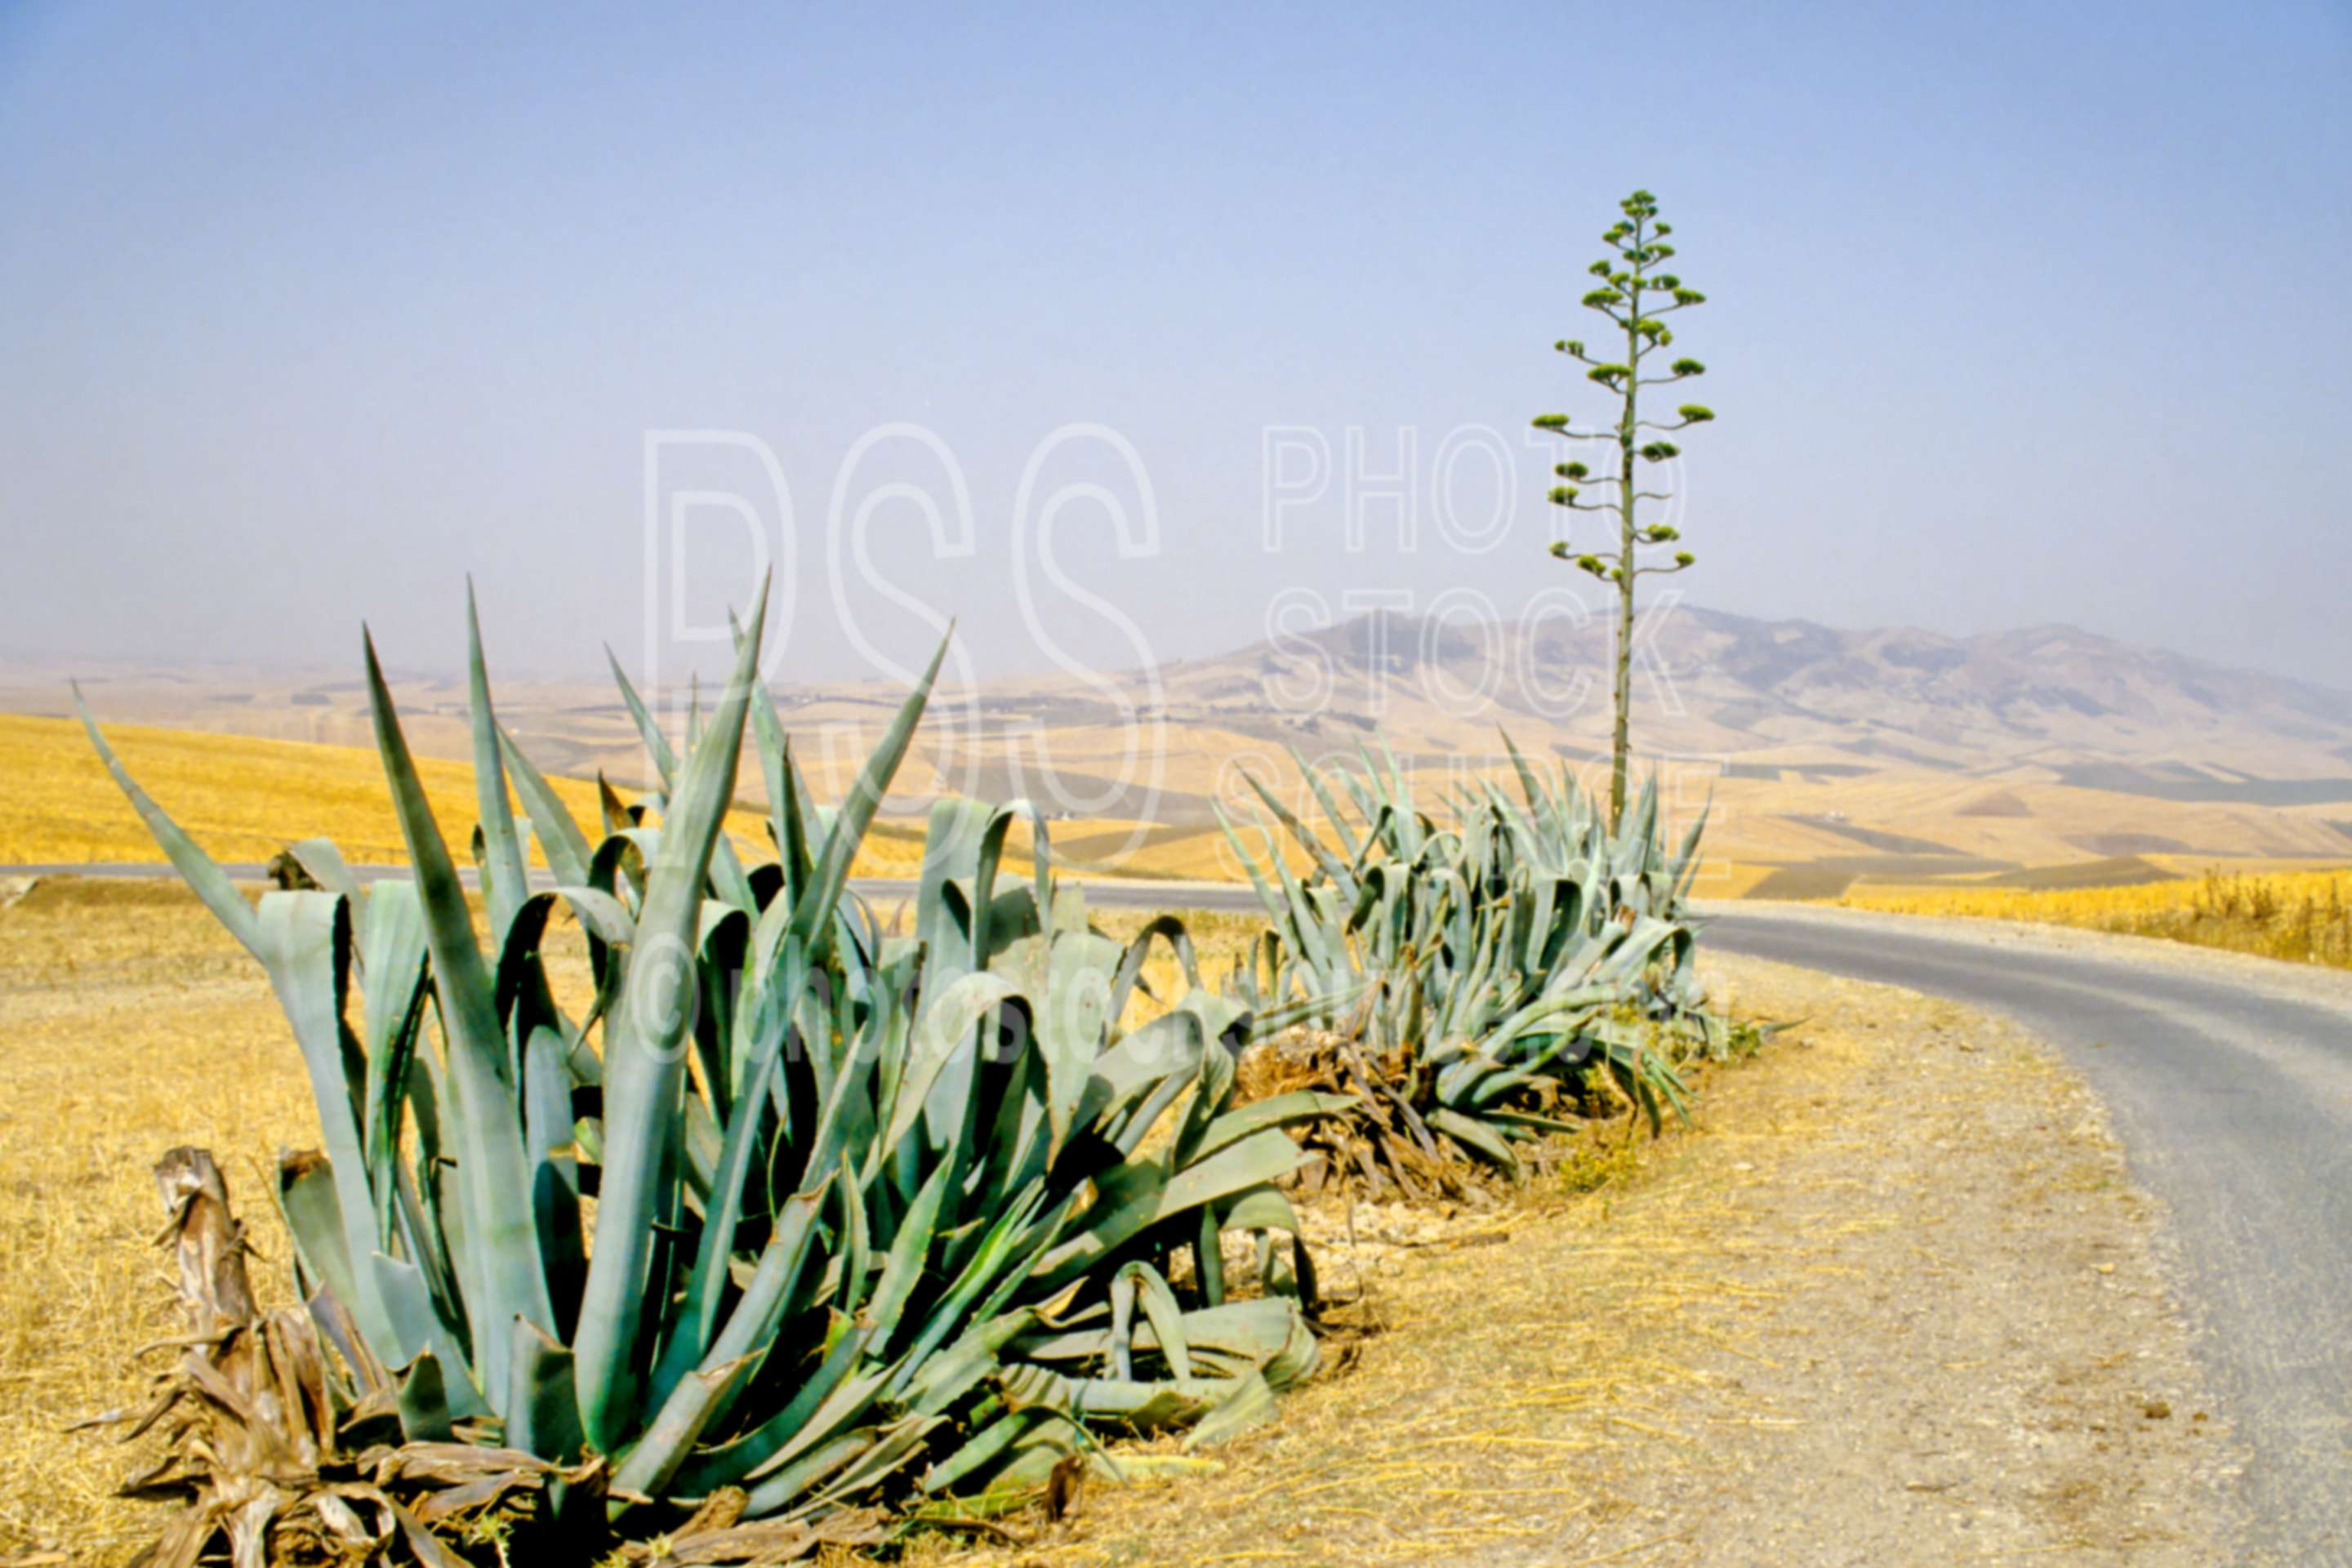 Spanish Sword,large view,large image view,large photo view,enlarged view,zoom in,high resolution,detail,big,large,full view,Spanish sword agave cactus near Volubolis,Volubolis,Morocco,plant,agave,cactus,plant,desert,plants